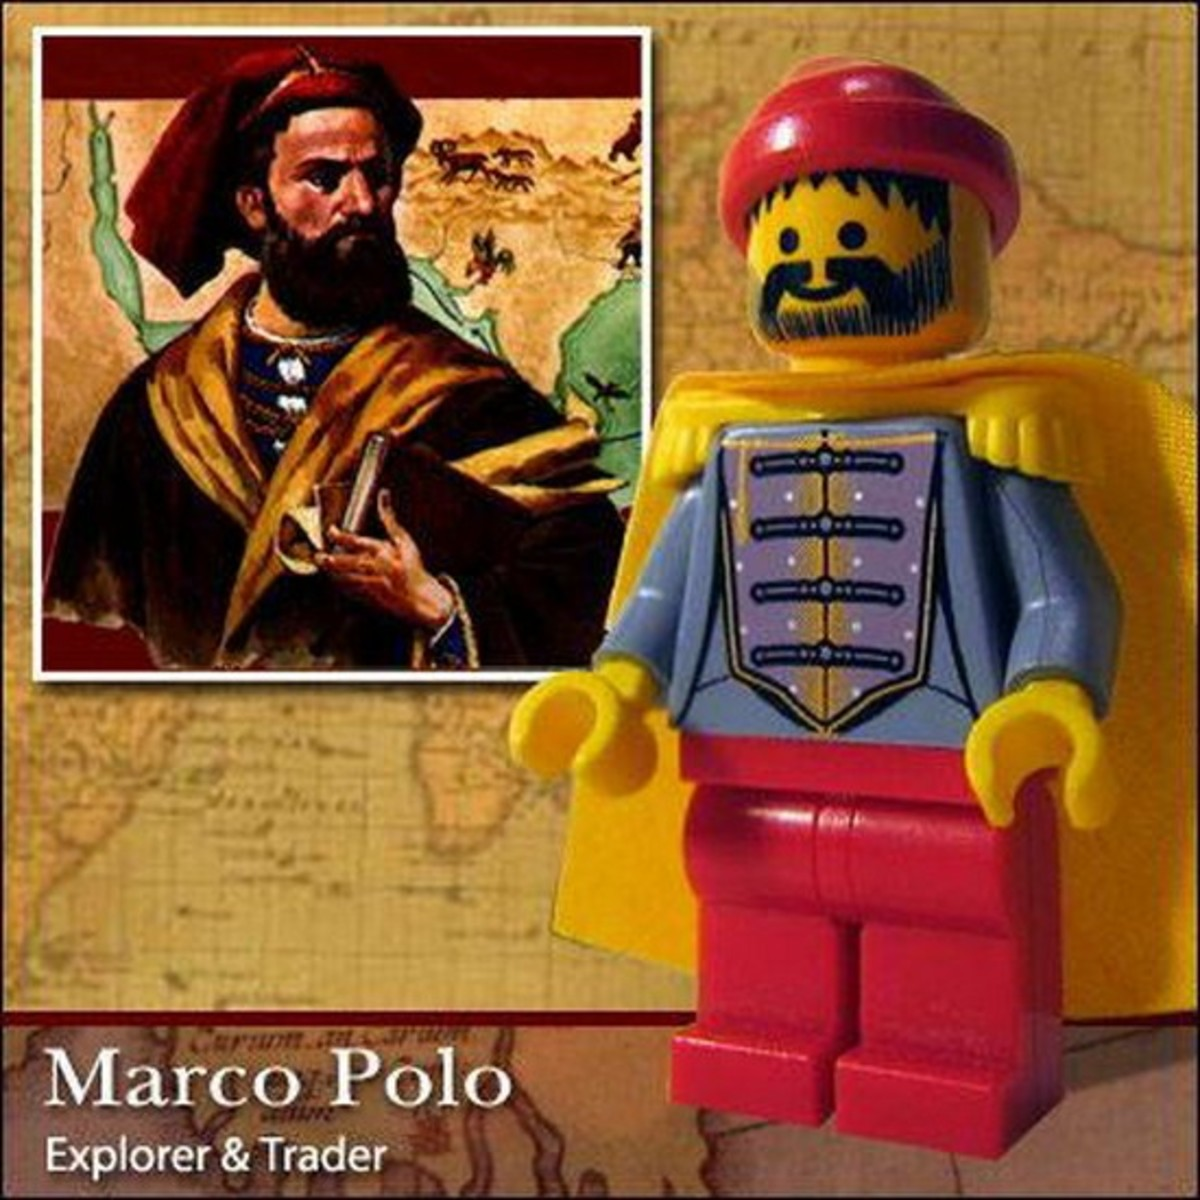 Marco Polo Lego Photo